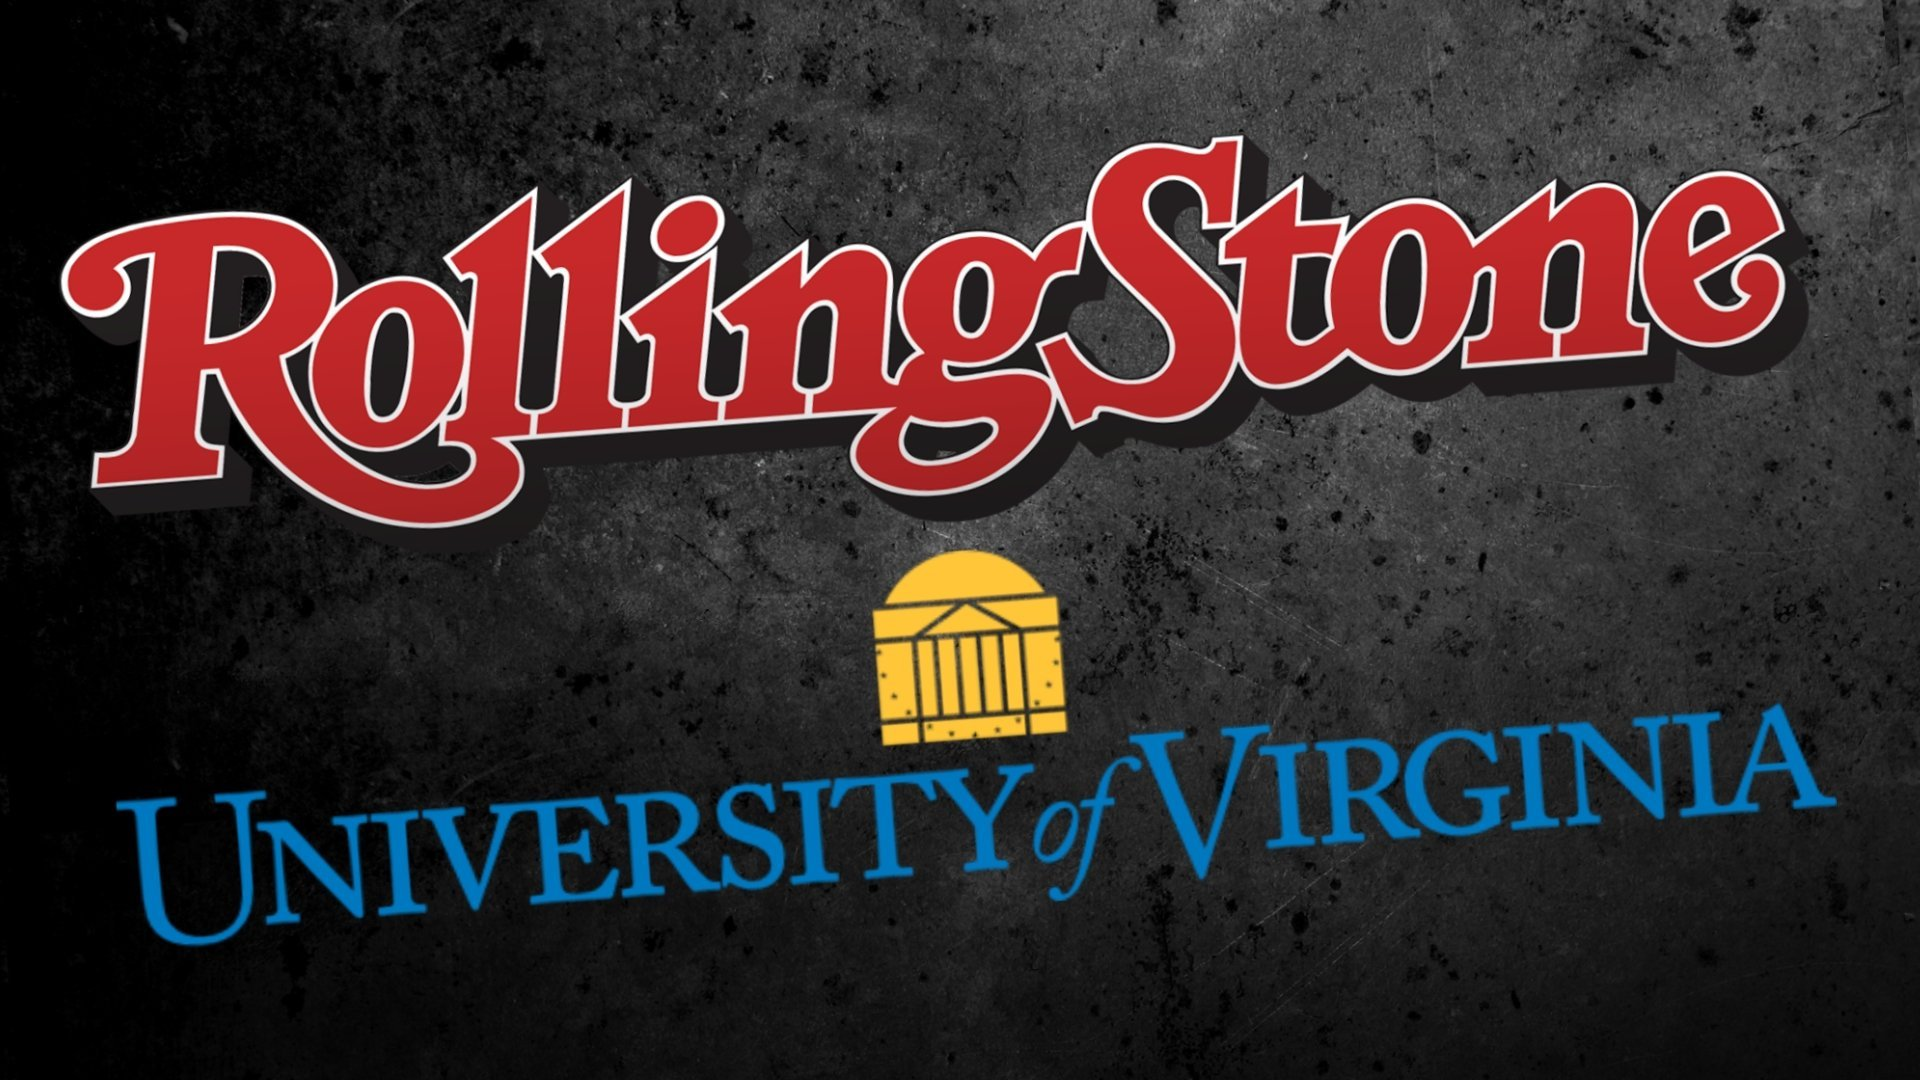 UVA Rolling Stone Defamation Trial